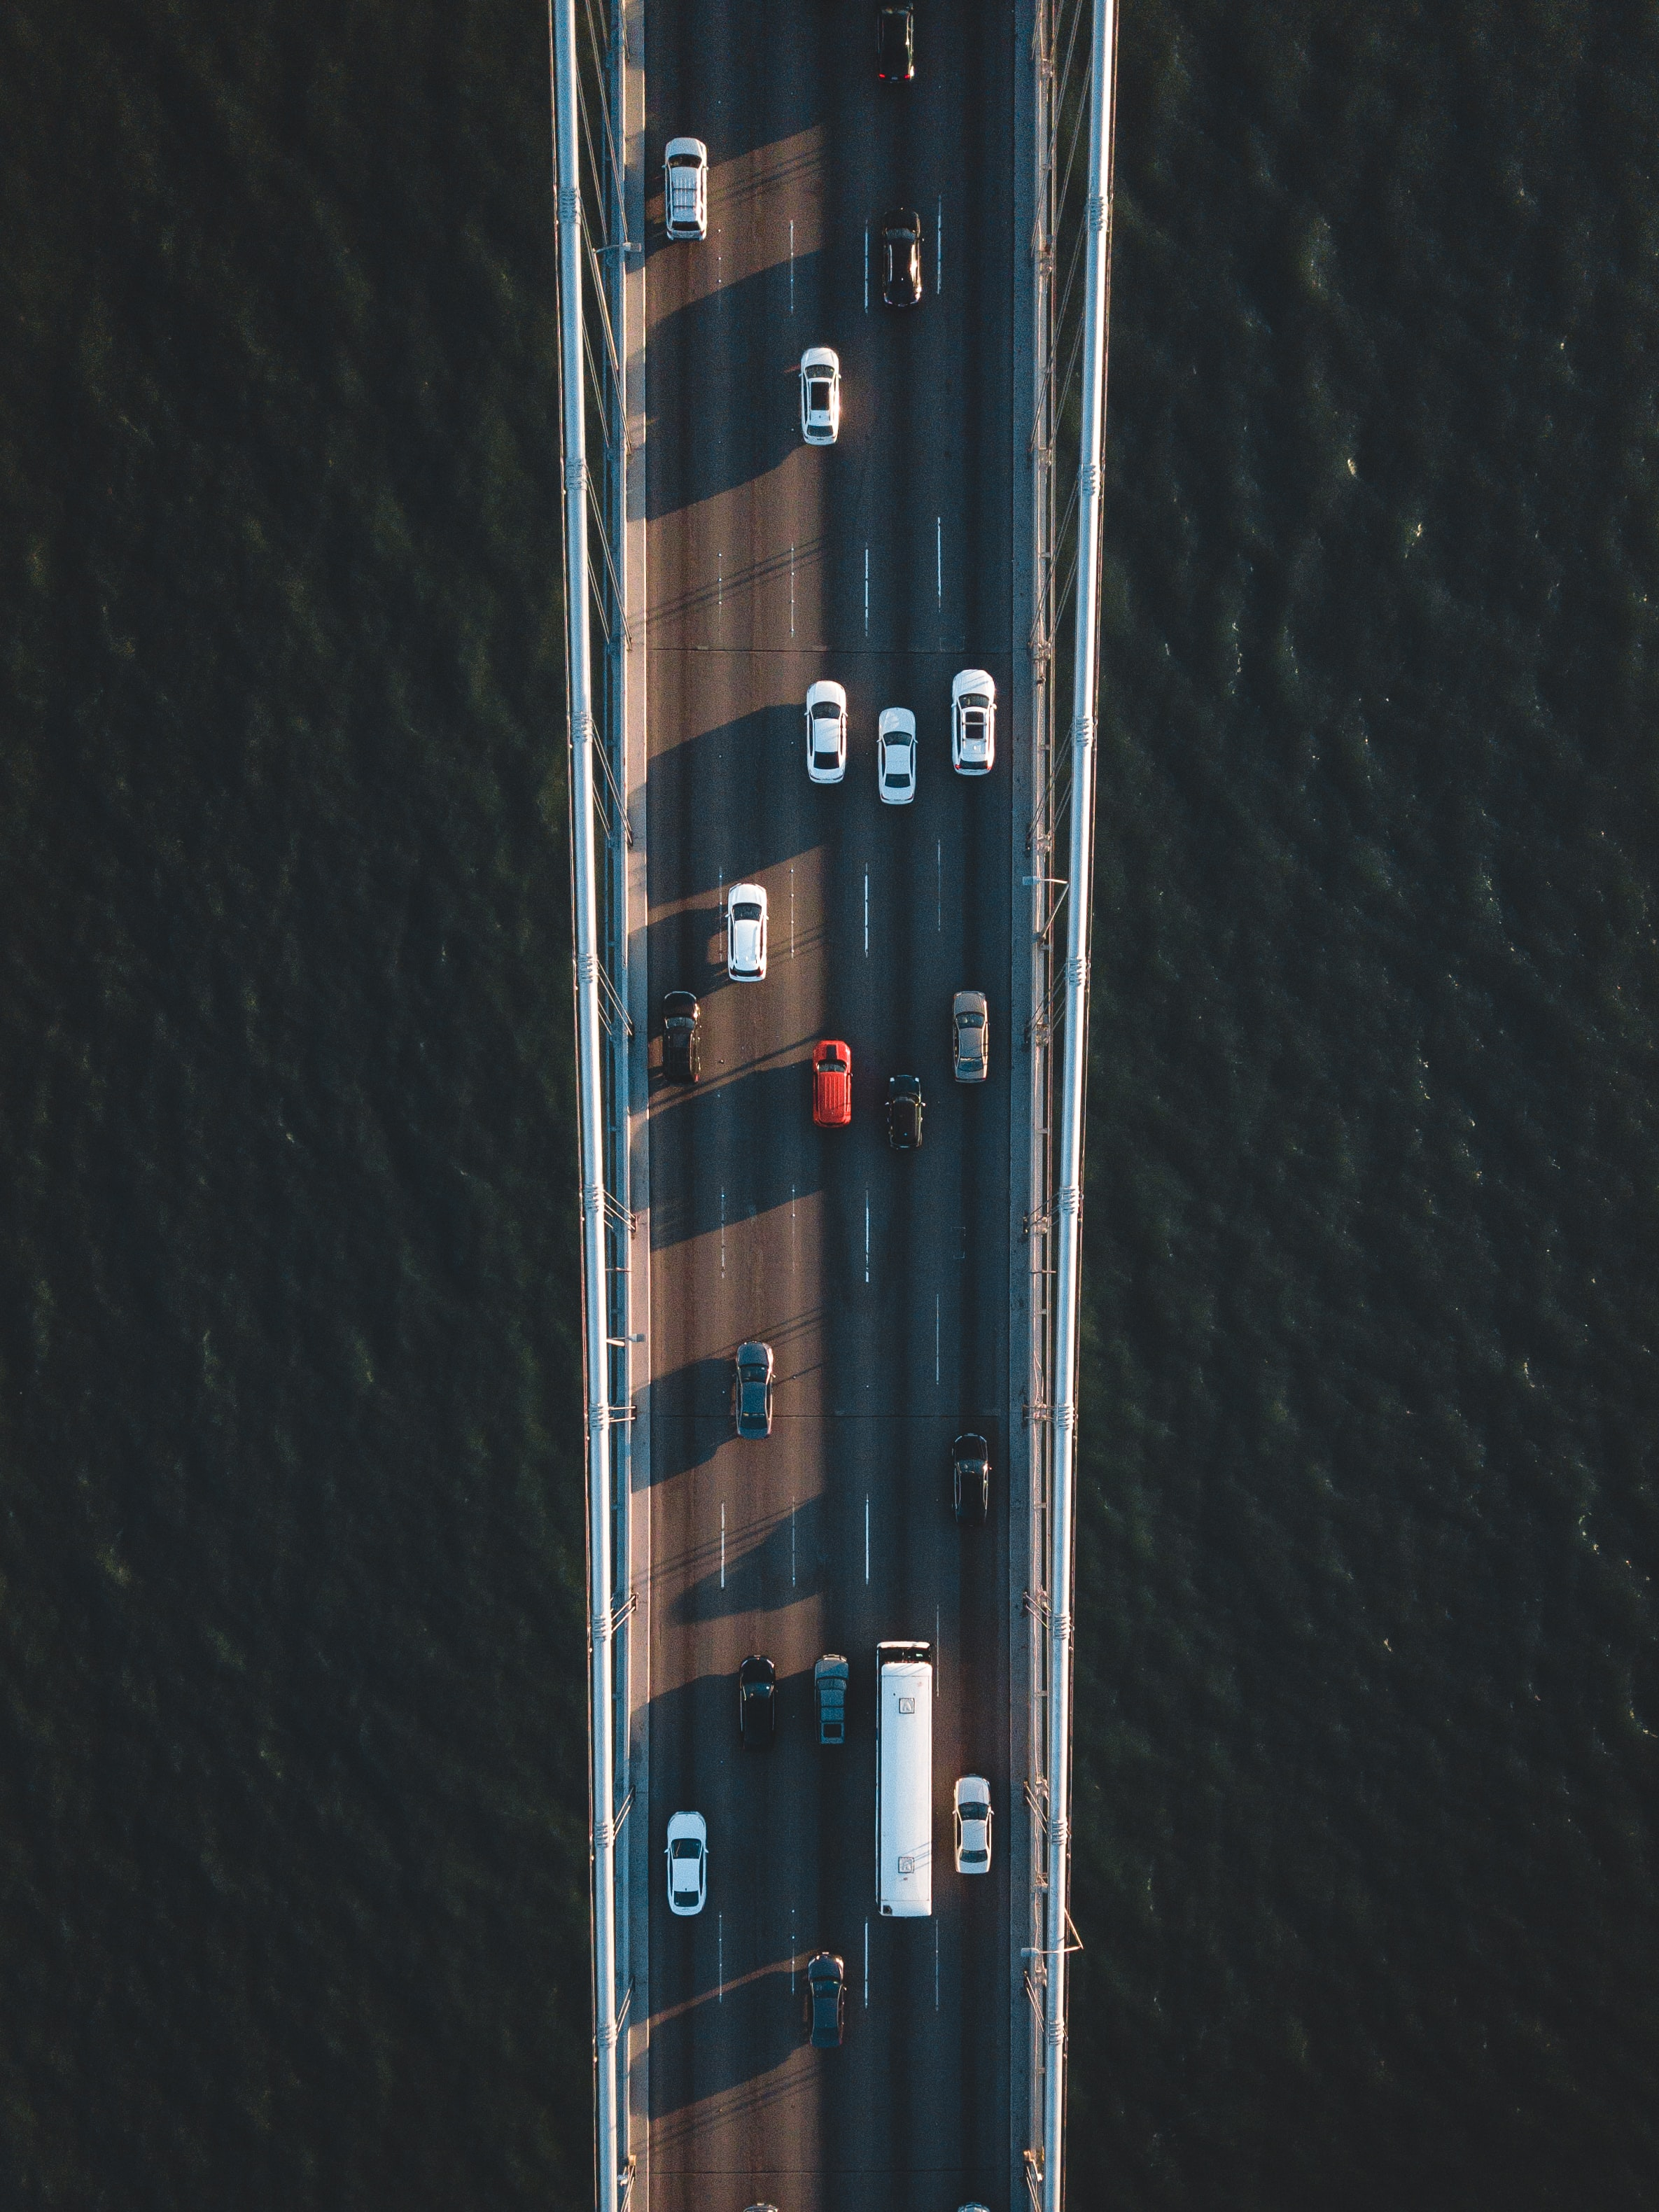 aerial photography of vehicles on road